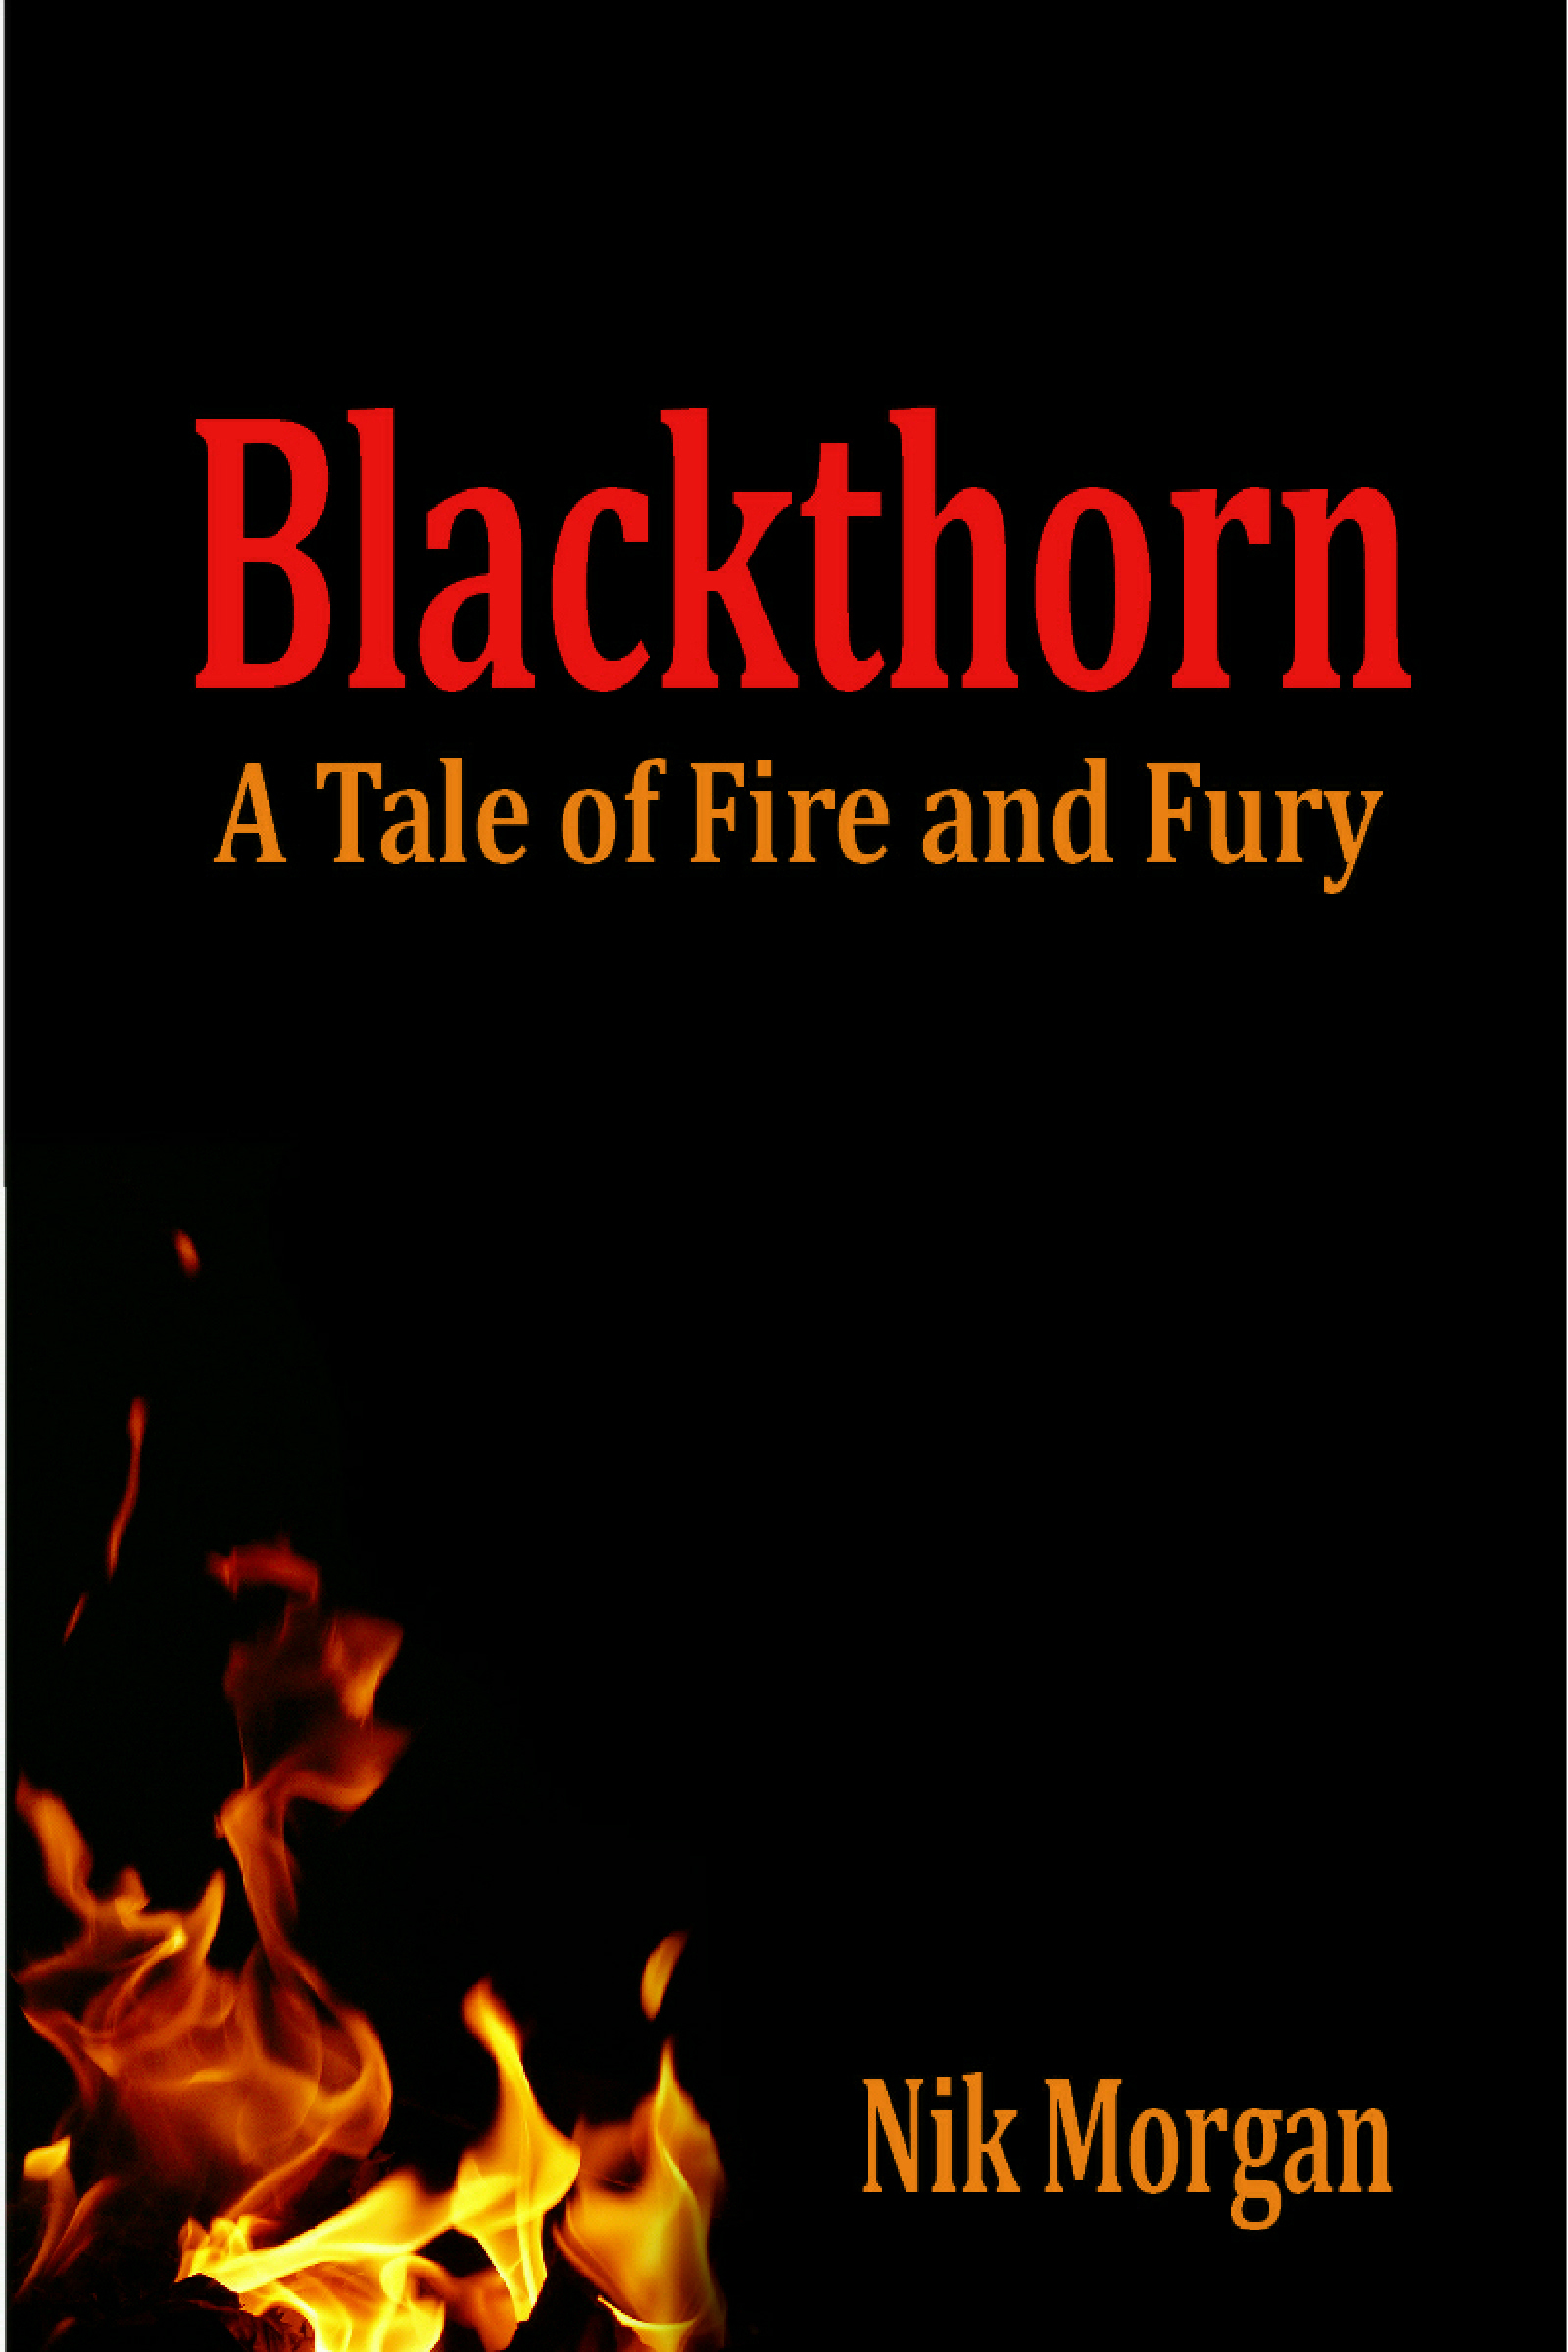 Blackthorn: A Tale of Fire and Fury